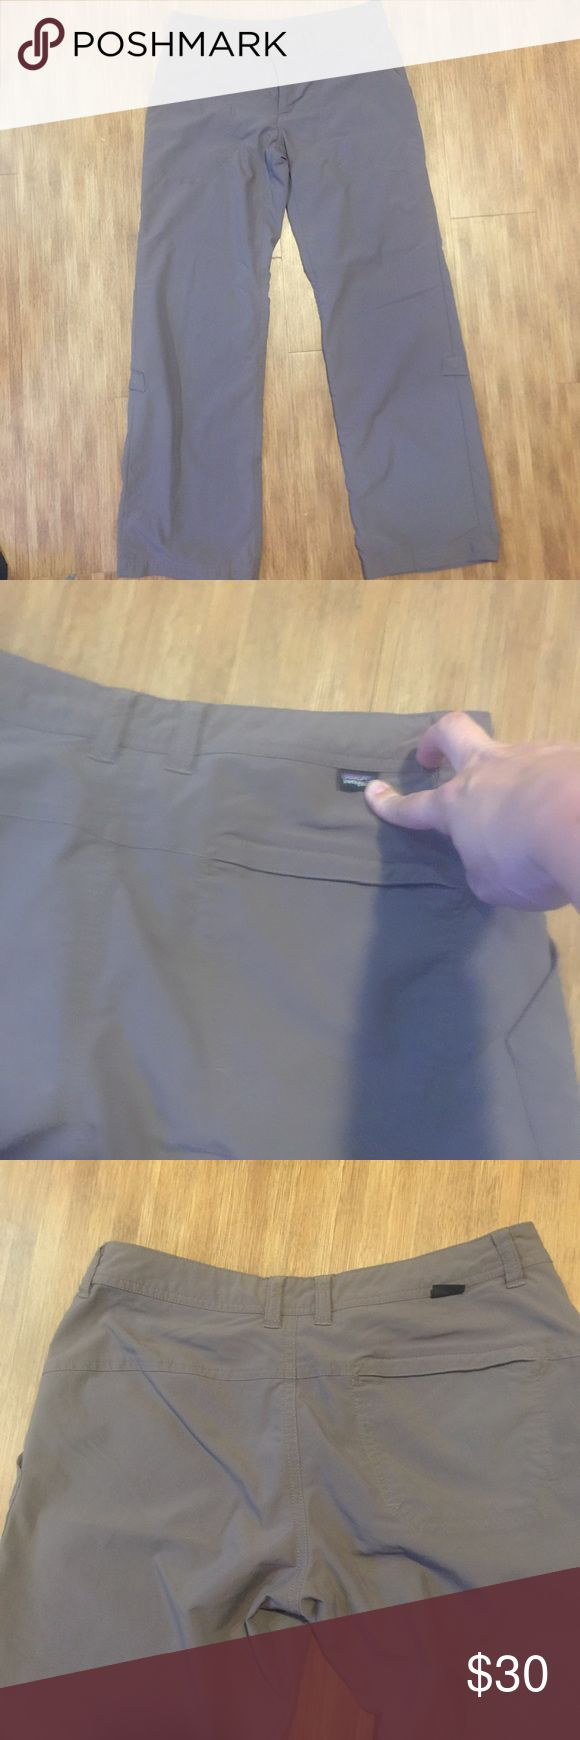 Women's Grey Patagonia Pants Absolutely perfect condition. Grey Hiking Pants from Patagonia Patagonia Pants